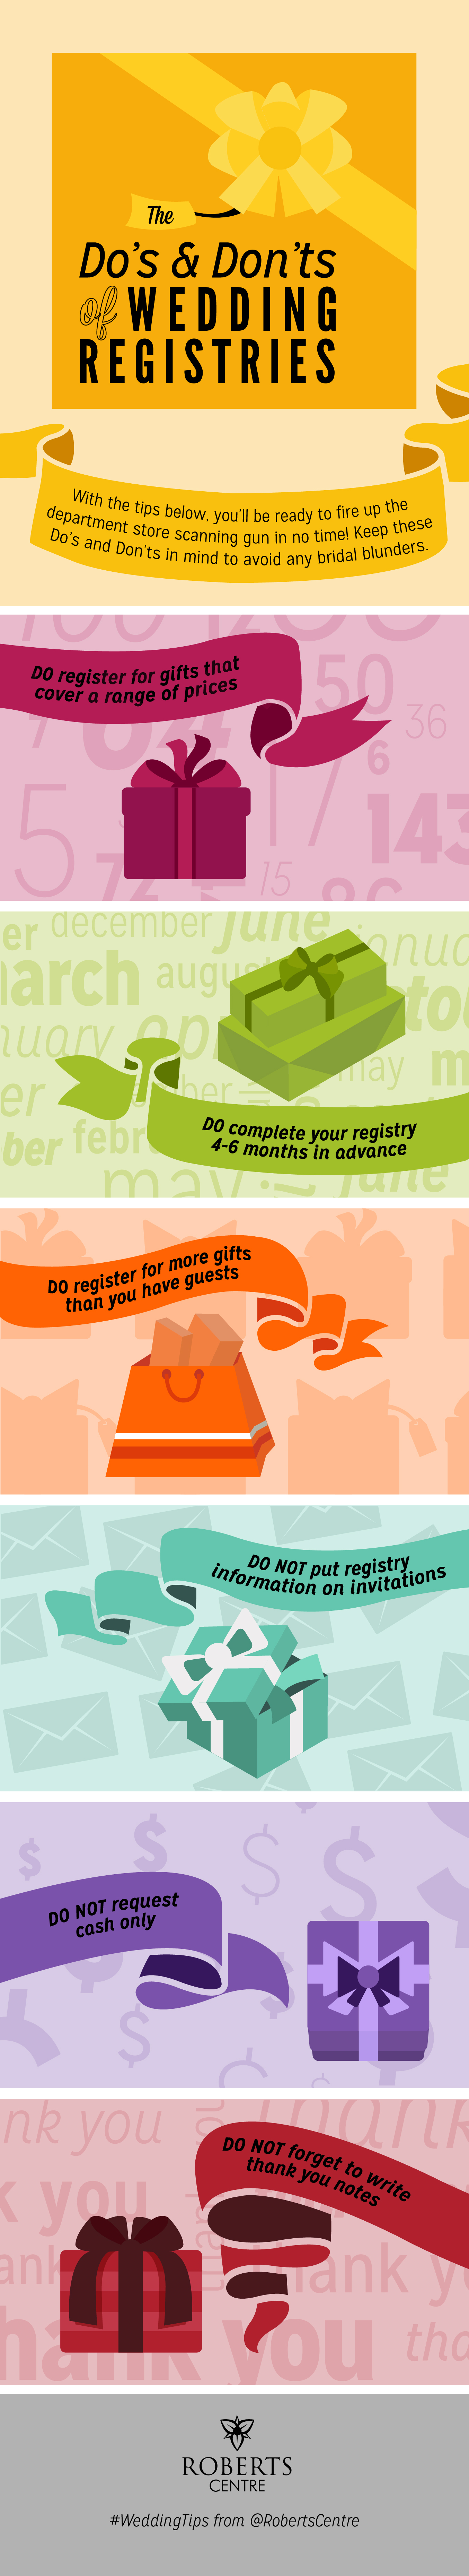 The Dos And Don Ts Of Wedding Registry Etiquette Wedding Planning